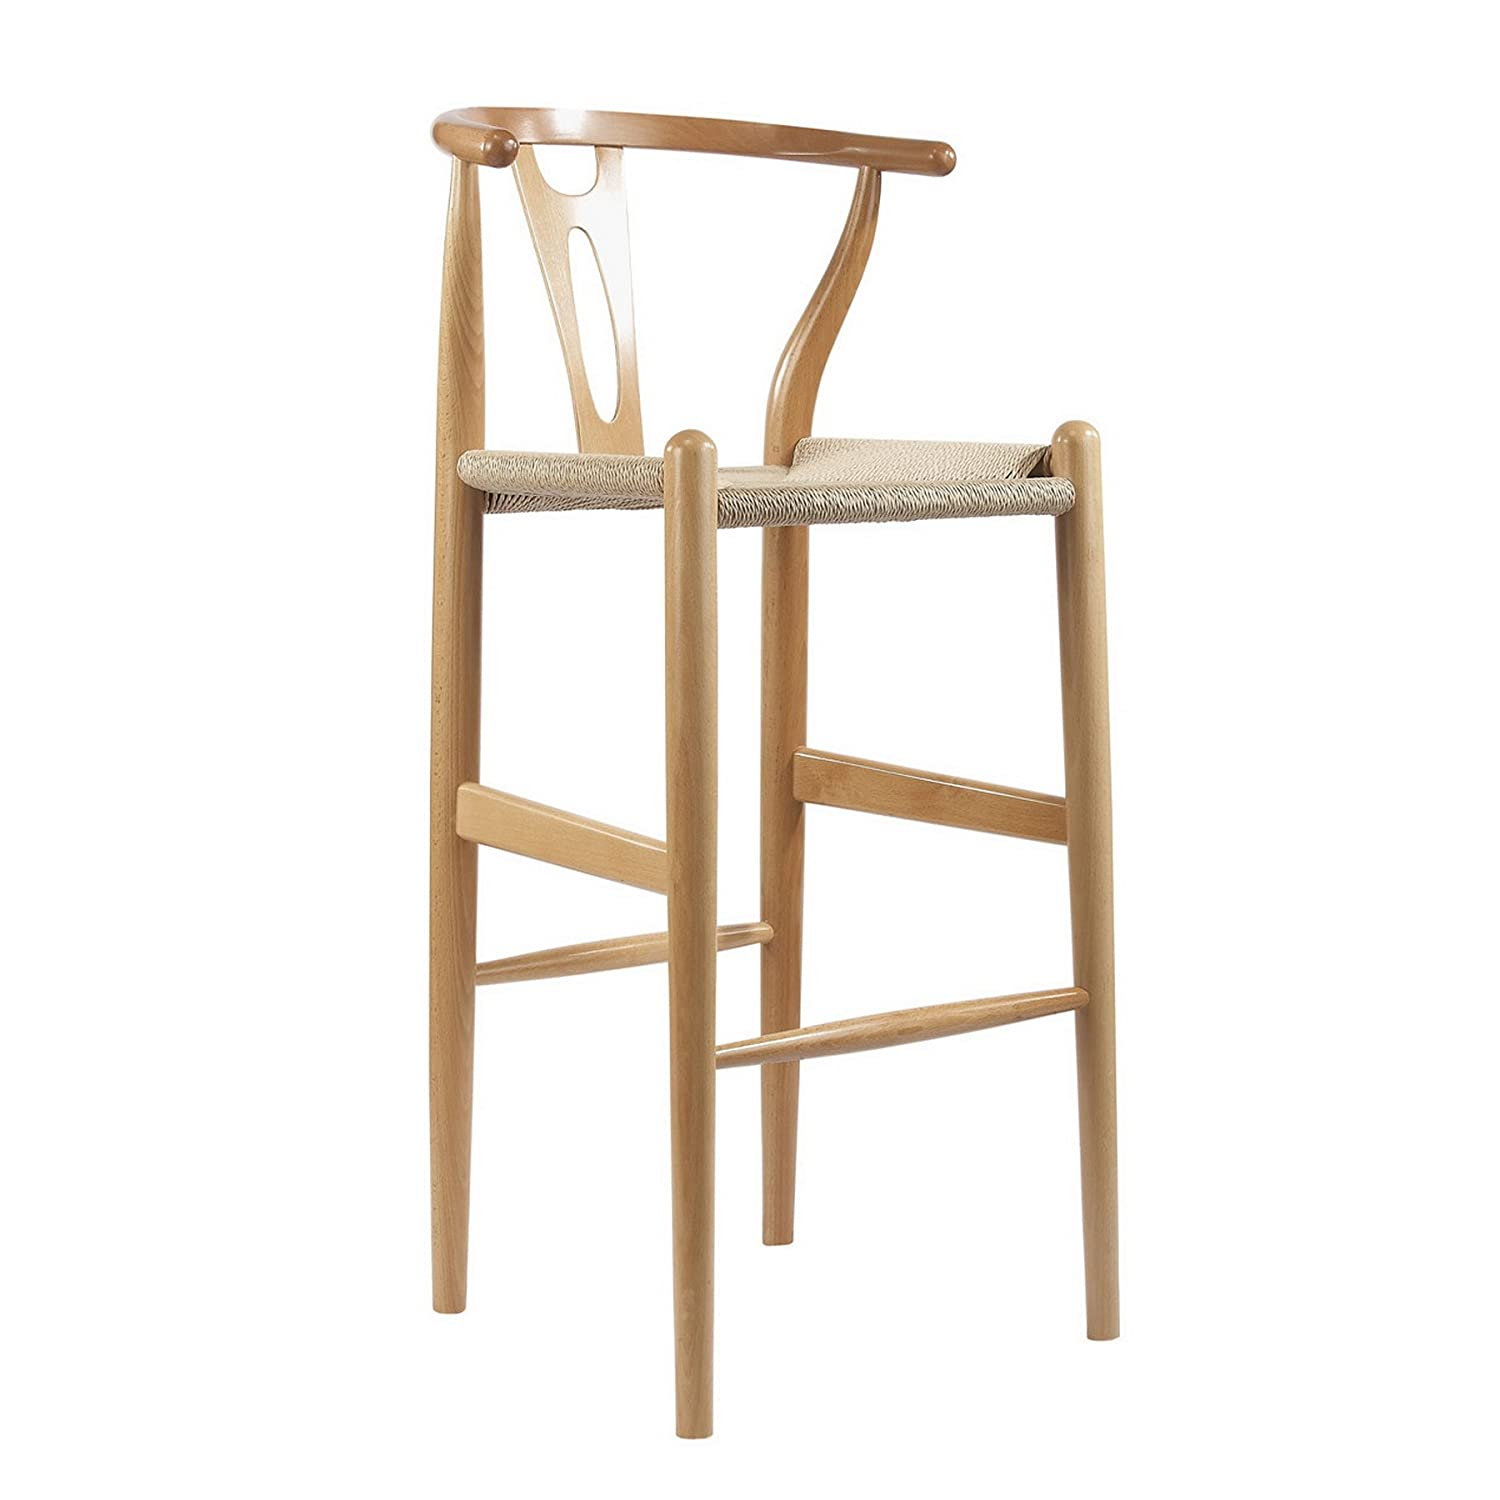 Amazon.com Baxton Studio Mid-Century Modern Wishbone Wood-Y Stool Natural Kitchen u0026 Dining  sc 1 st  Amazon.com & Amazon.com: Baxton Studio Mid-Century Modern Wishbone Wood-Y Stool ... islam-shia.org